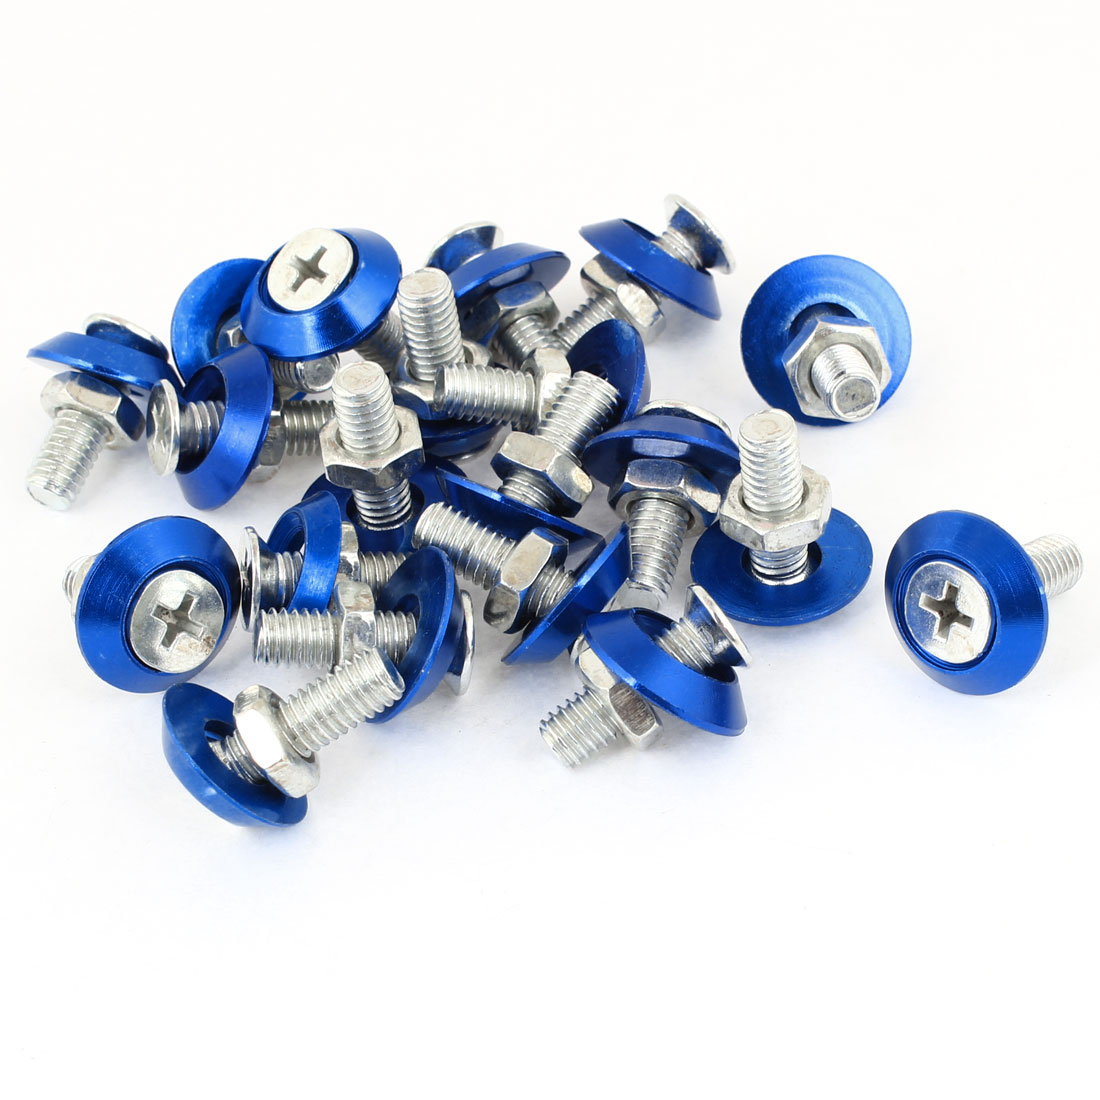 20 Pcs Silver Tone Blue Auto Car Motorcycle License Plate Frame Screw